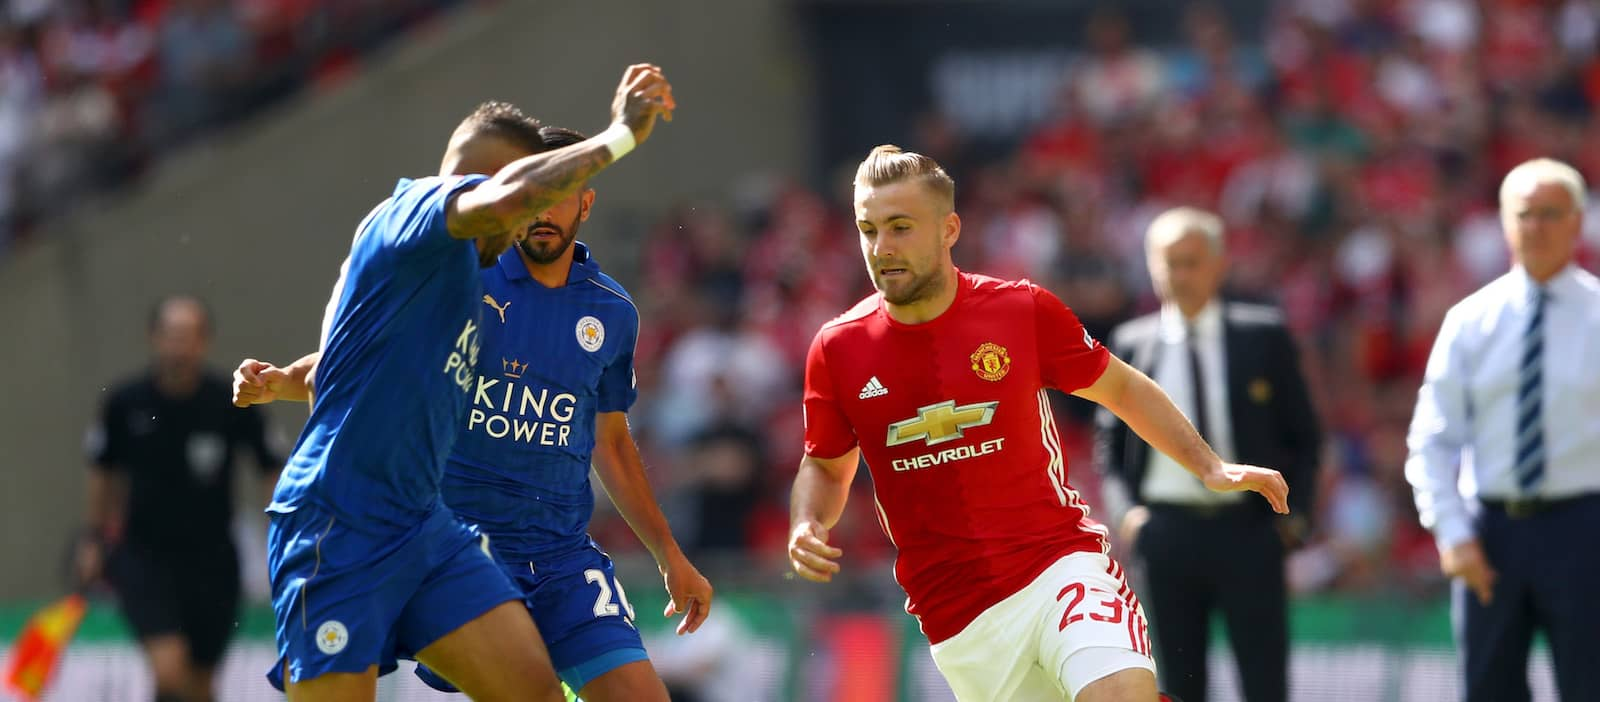 Luke Shaw: Jose Mourinho plays attacking football at Manchester United